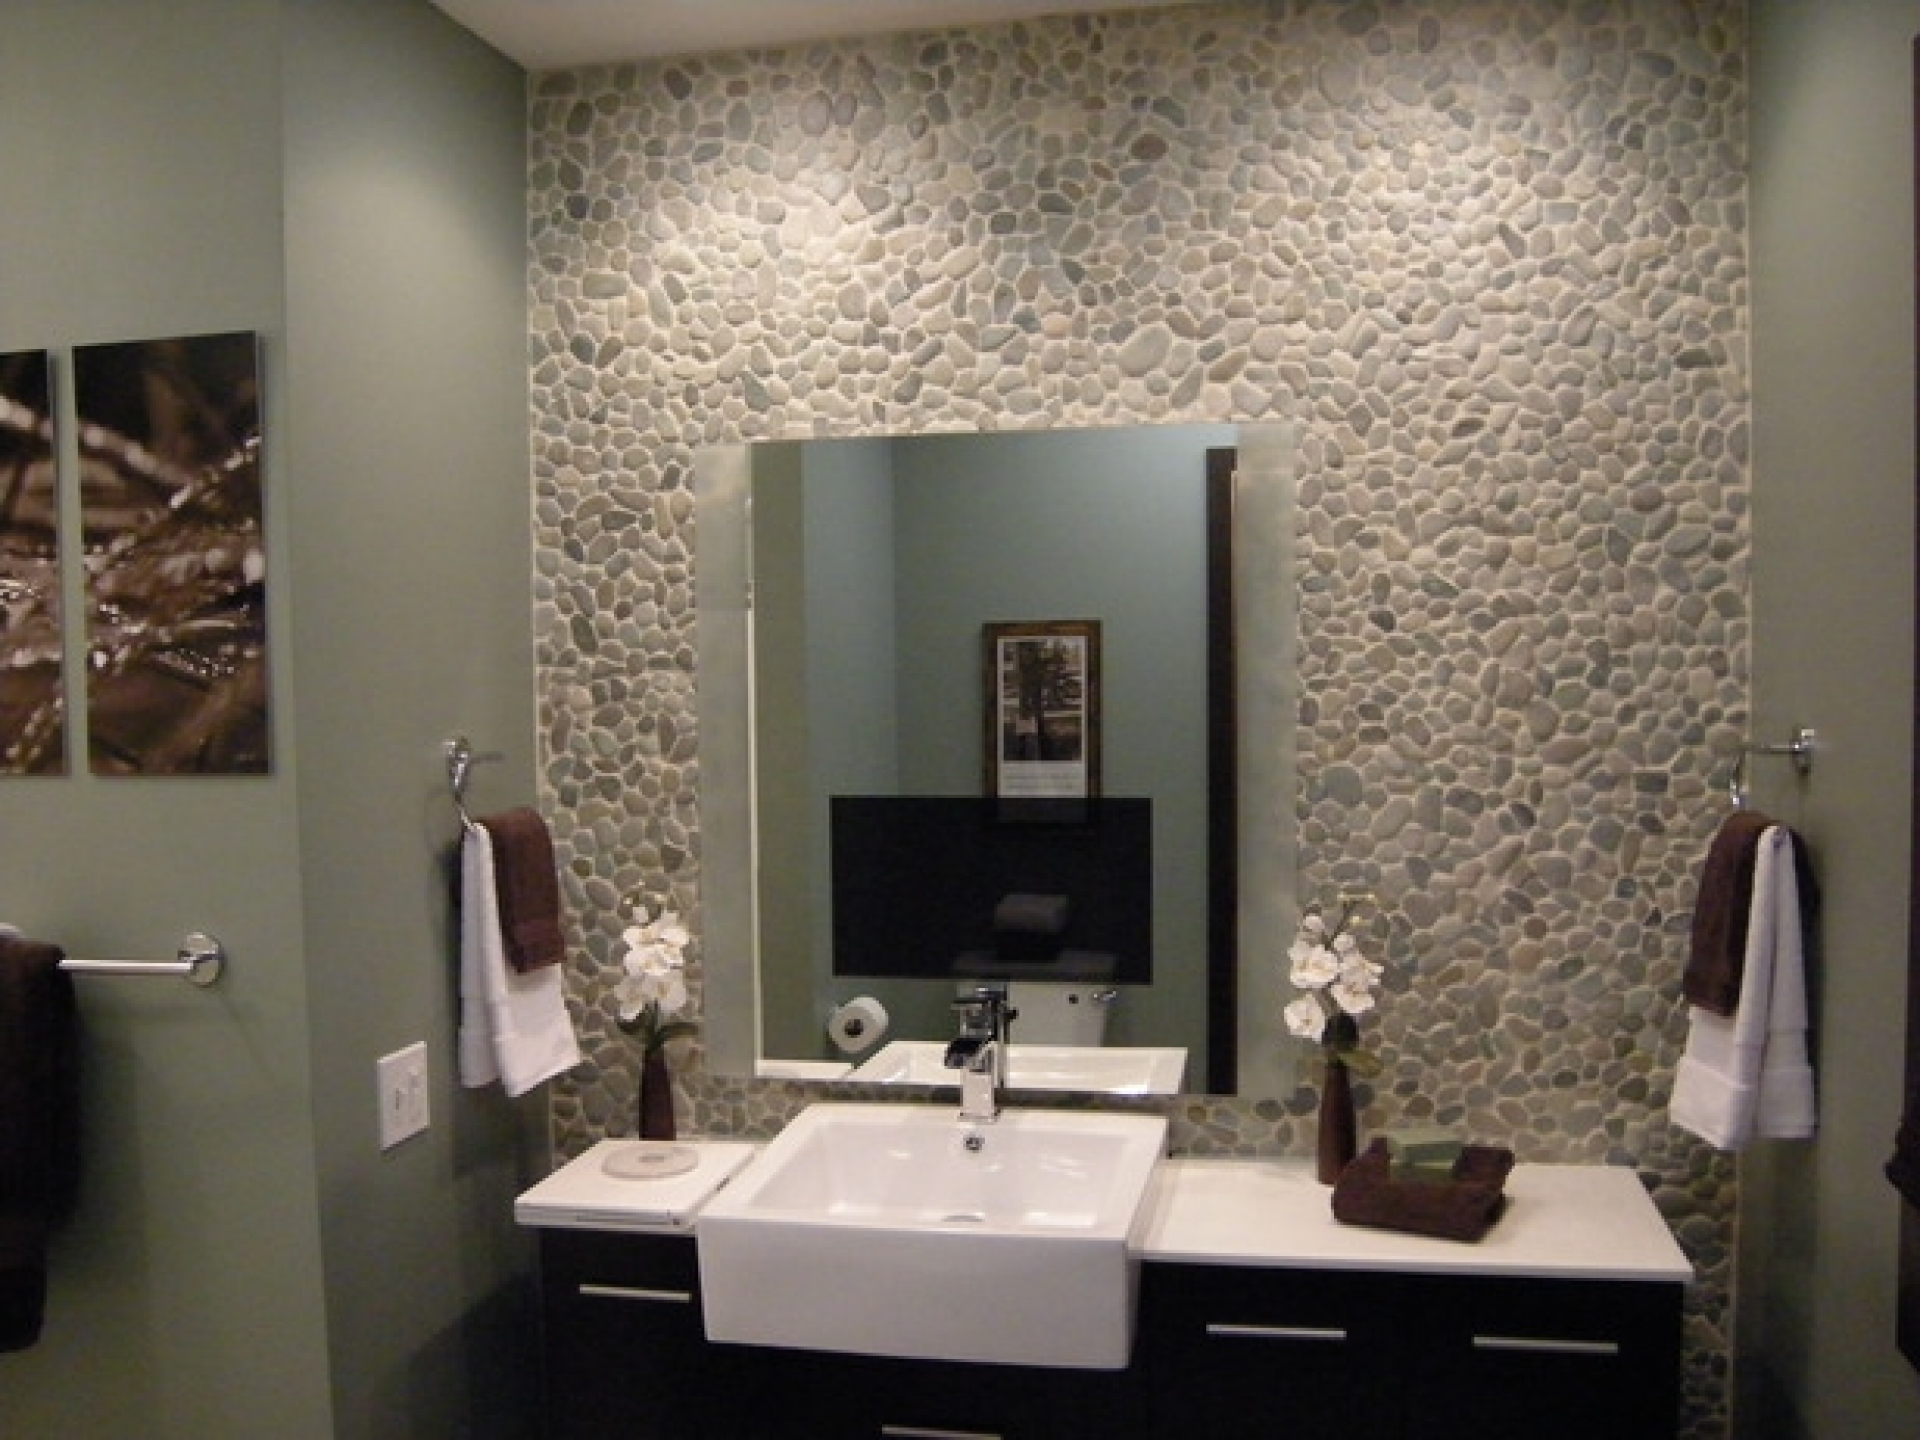 33 stunning pictures and ideas of natural stone bathroom for Bathroom designs natural